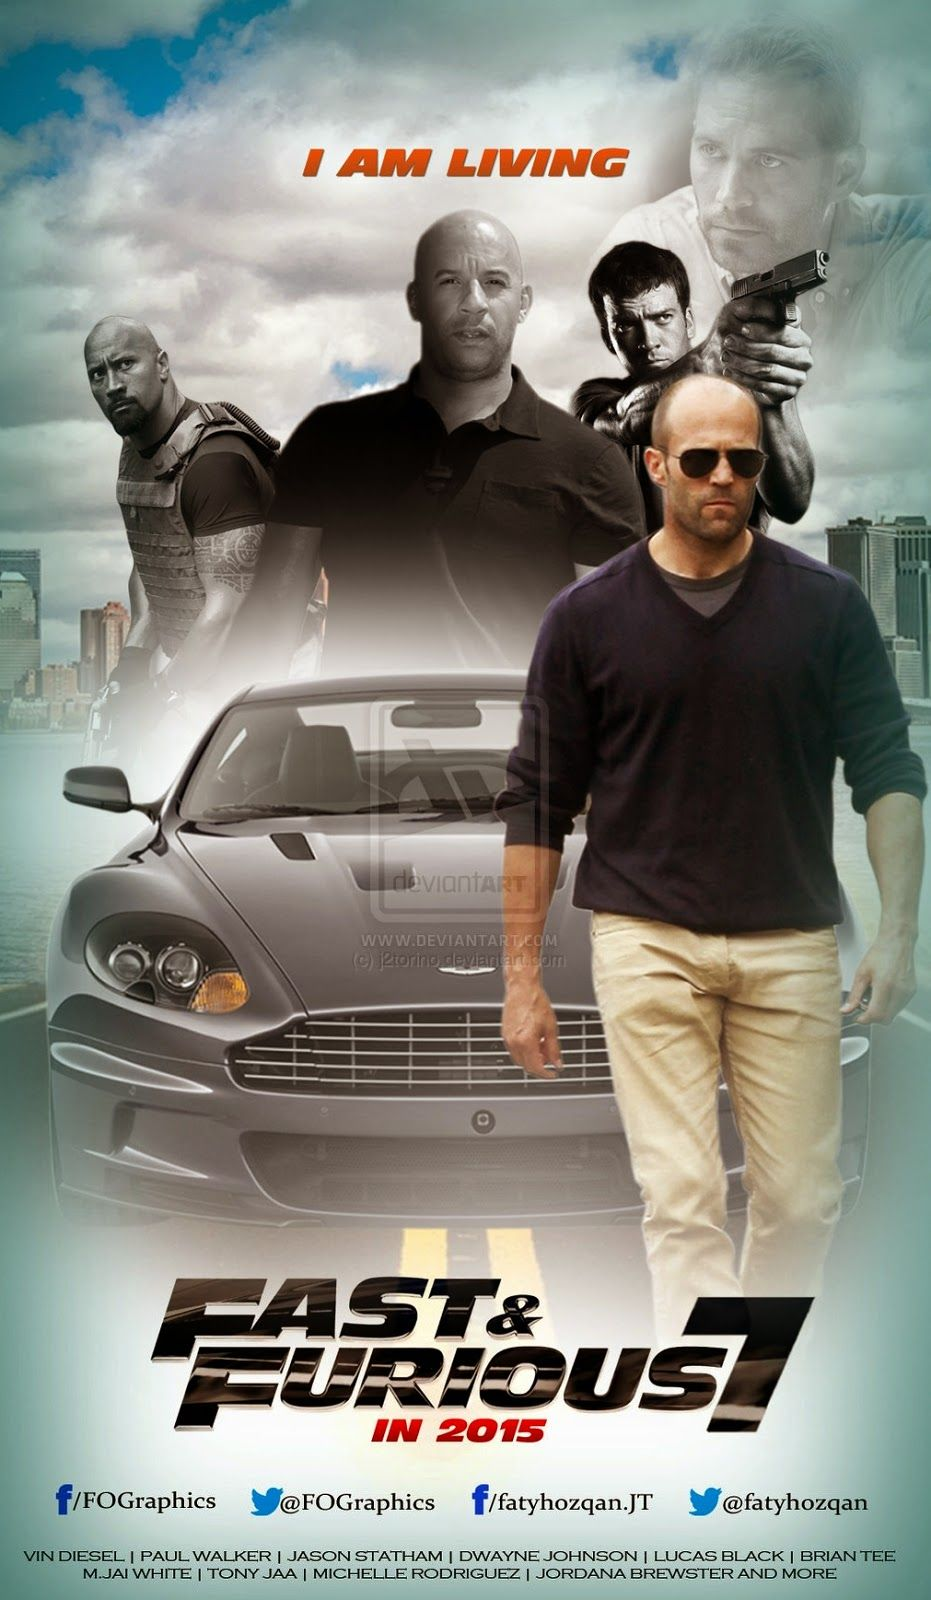 Download Full Hd Movie Free Fast And Furious 7 Movie Movie Fast Furious Full Movies Download 2015 Movies